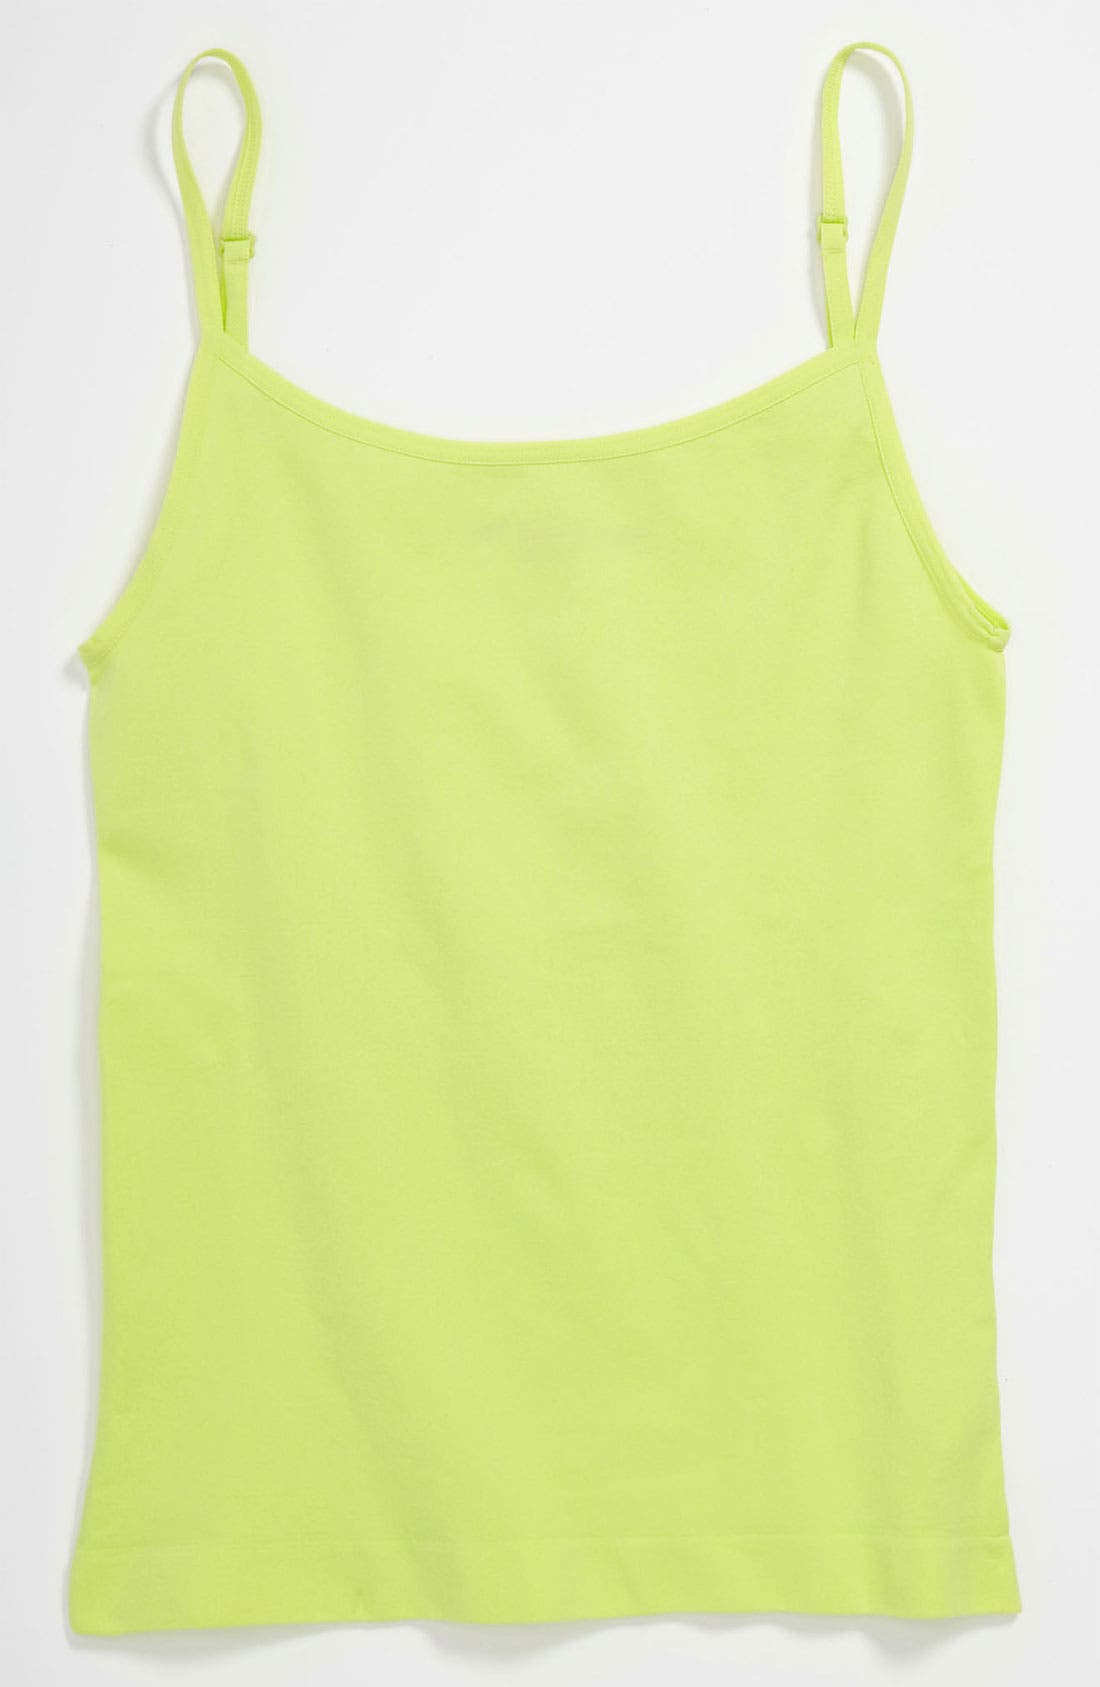 Alternate Image 1 Selected - Tucker + Tate Seamless Tank Top (Big Girls)